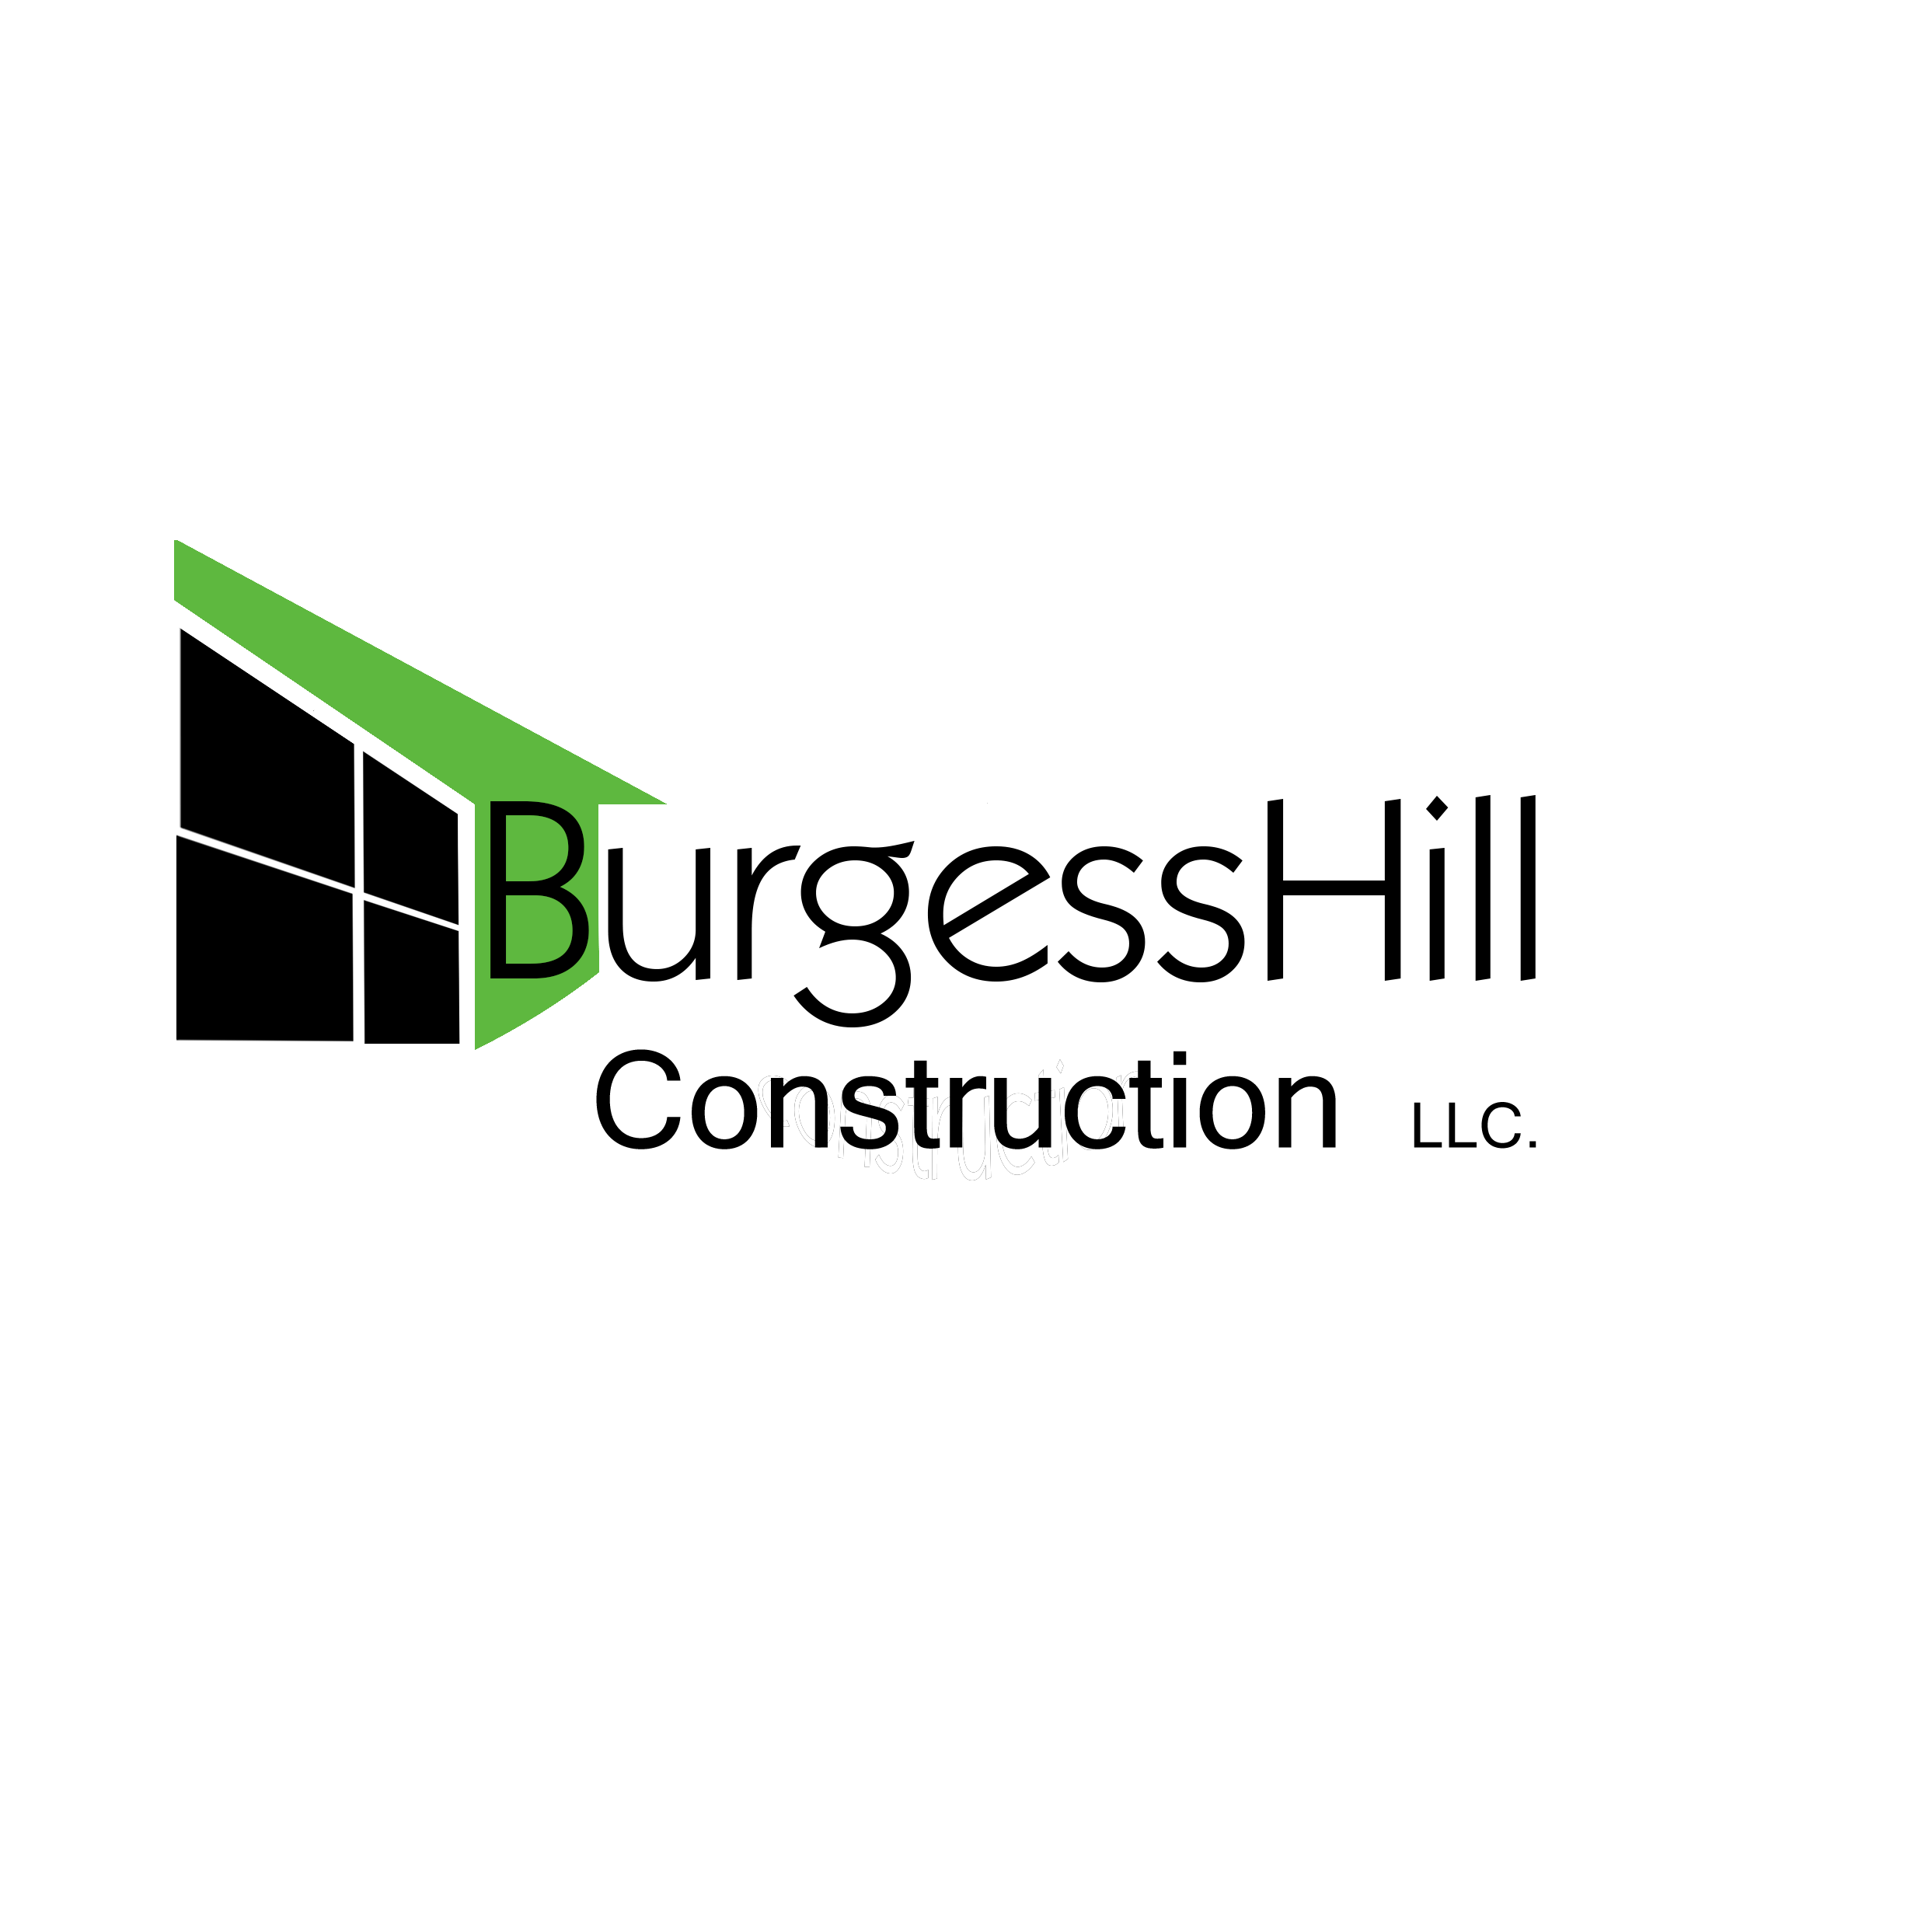 BurgessHill Construction LLC